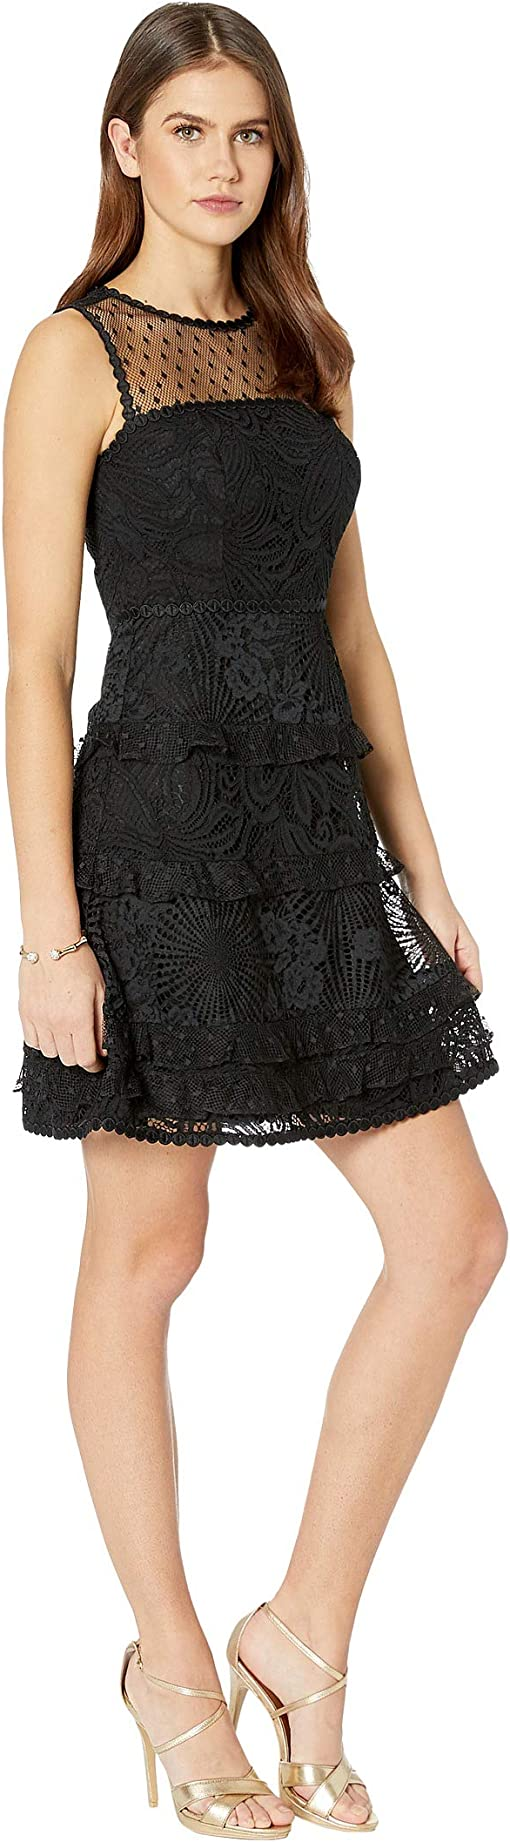 Onyx Floral Loopy Lace